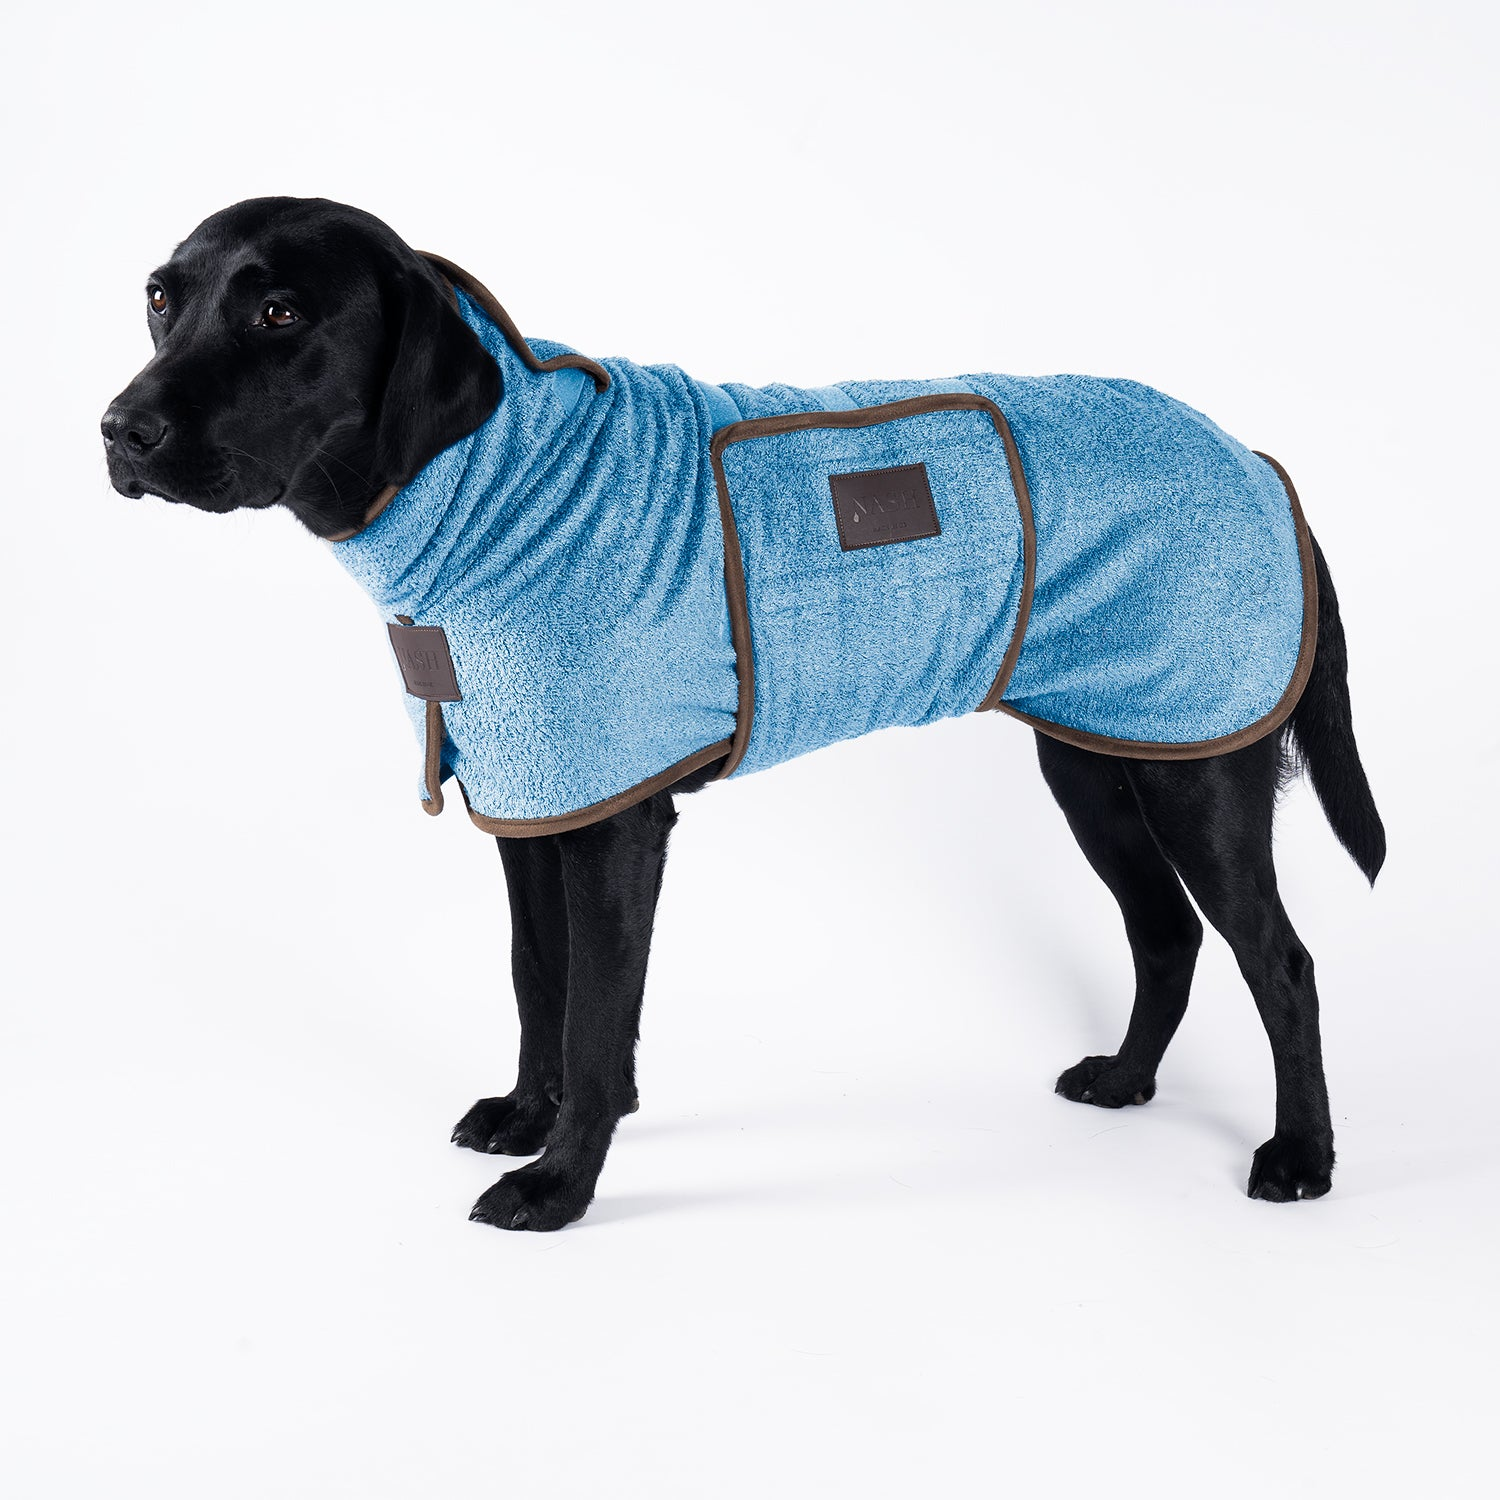 Bamboo Drying Coat - Cambridge - Shop Bamboo Dog Drying Coats, bed covers, drying mitts & throw Online!